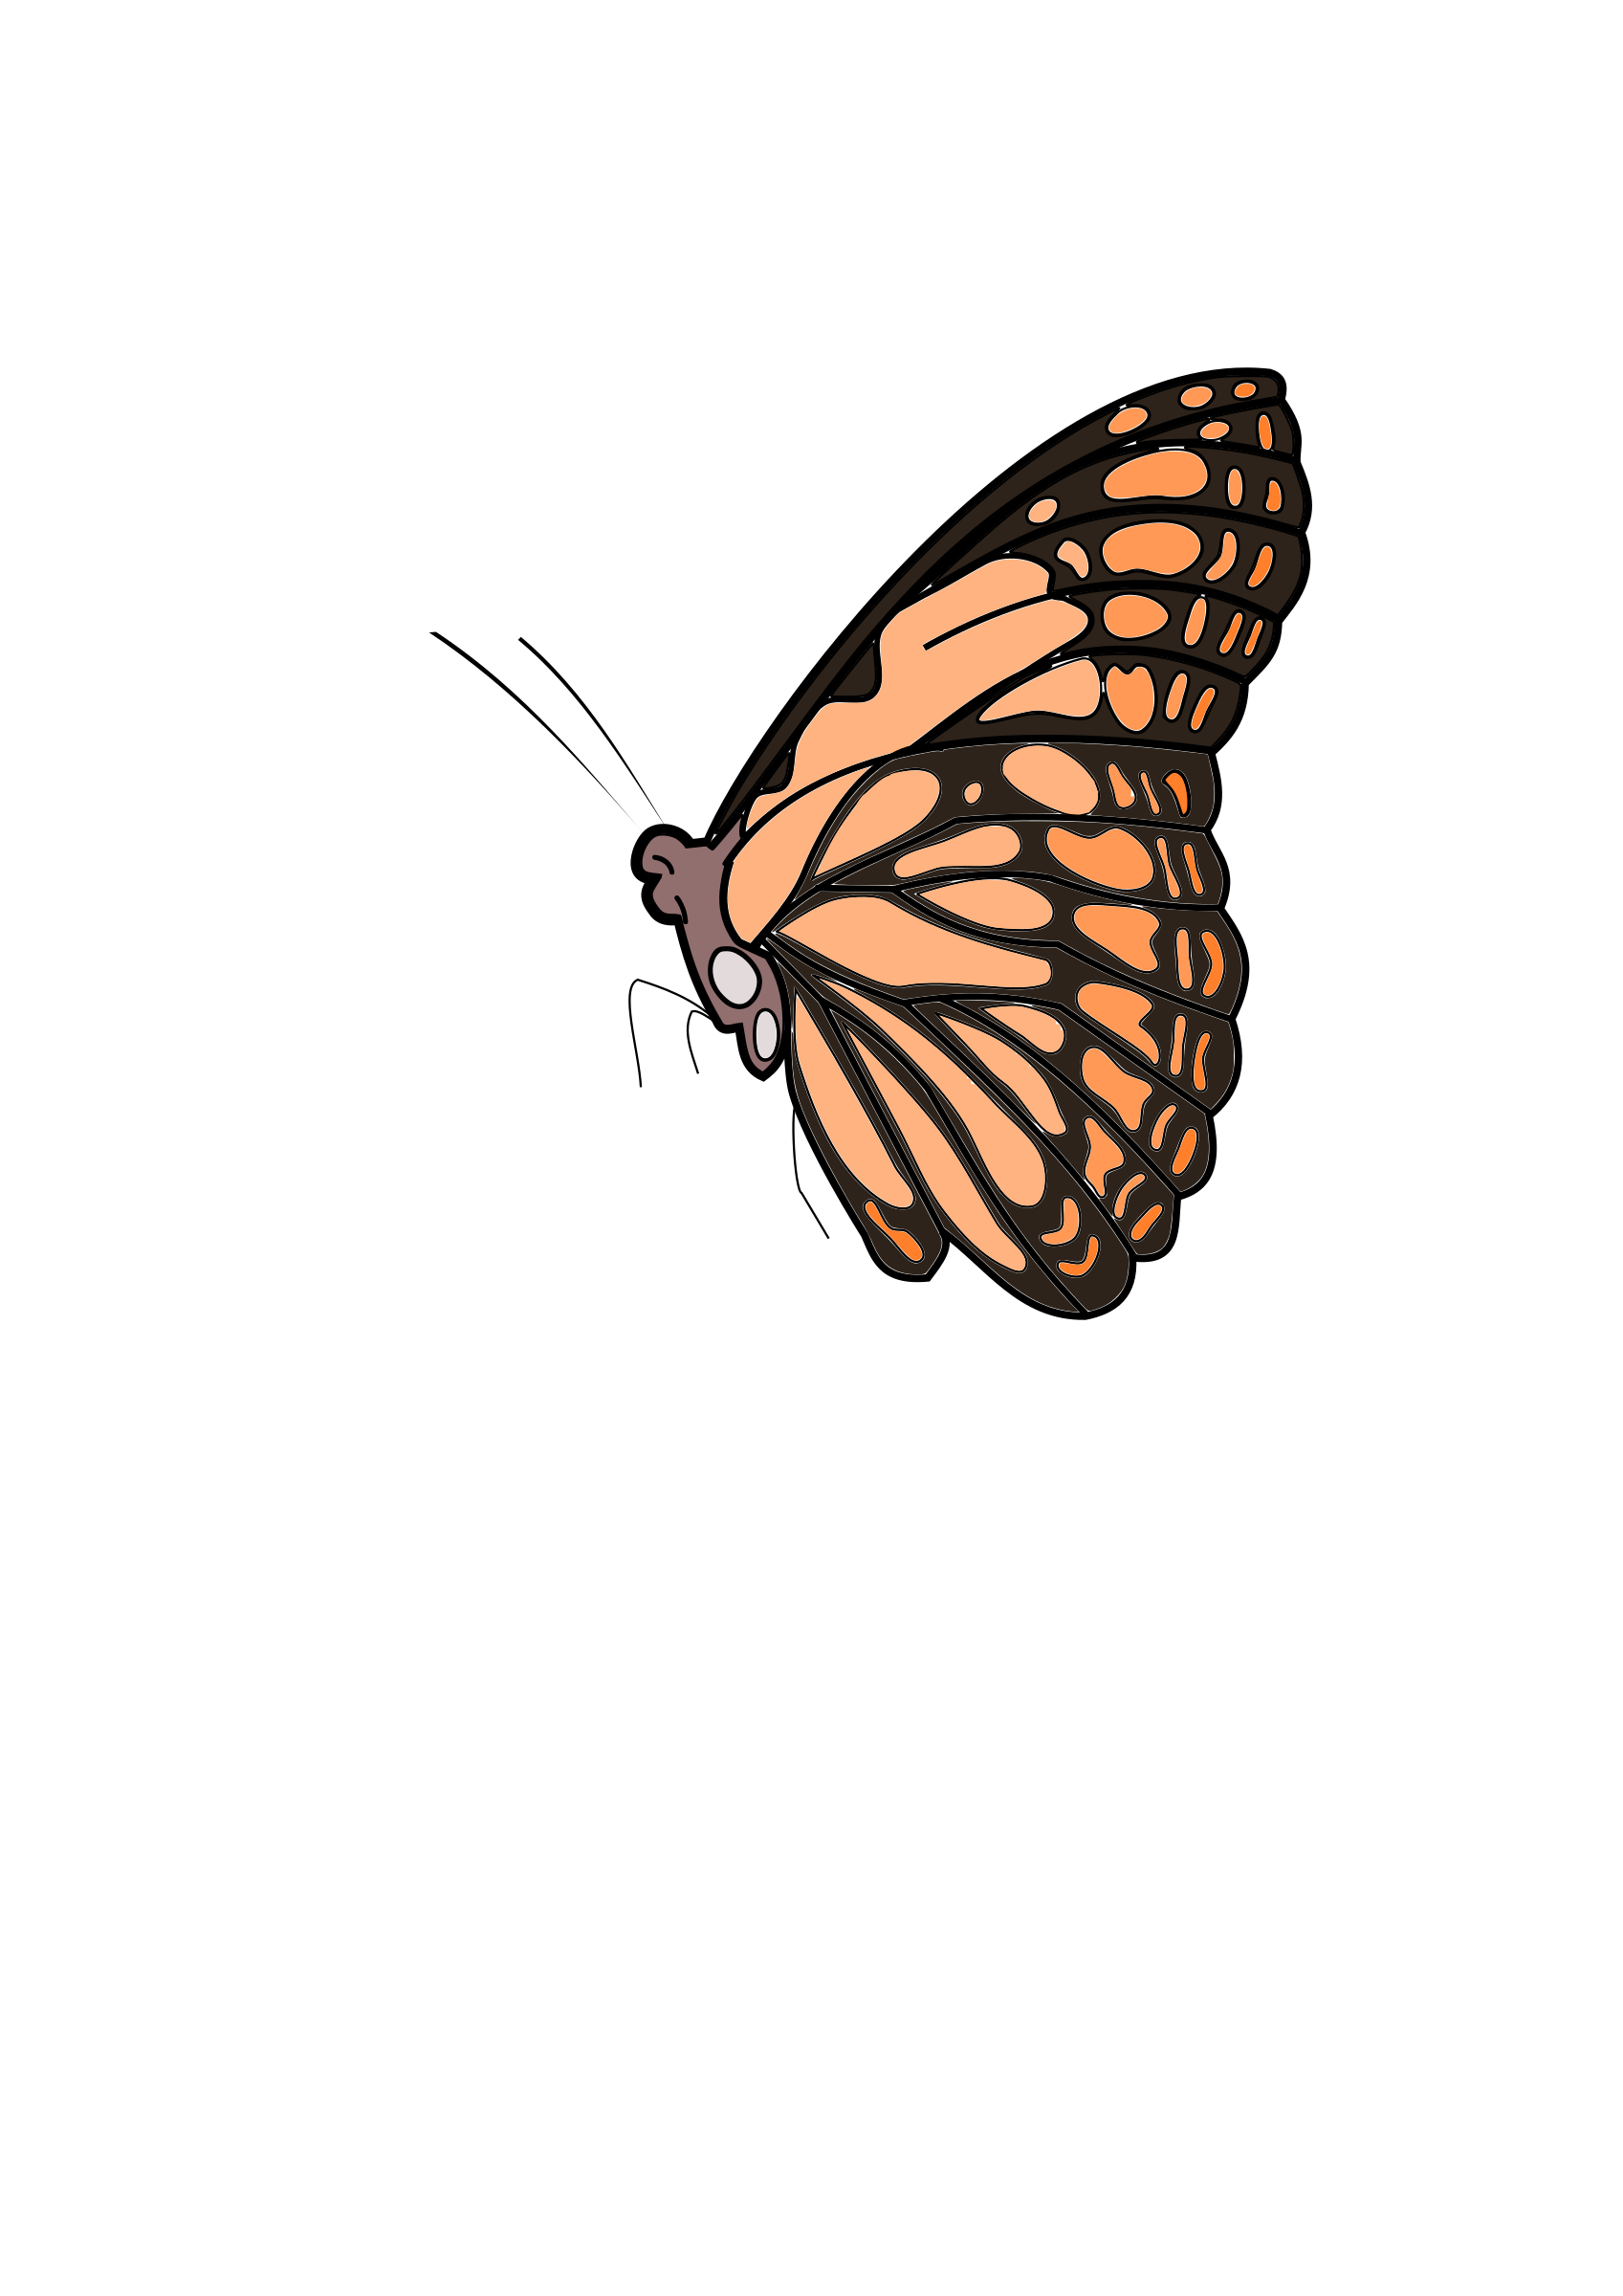 Butterfly by Siddymcbill